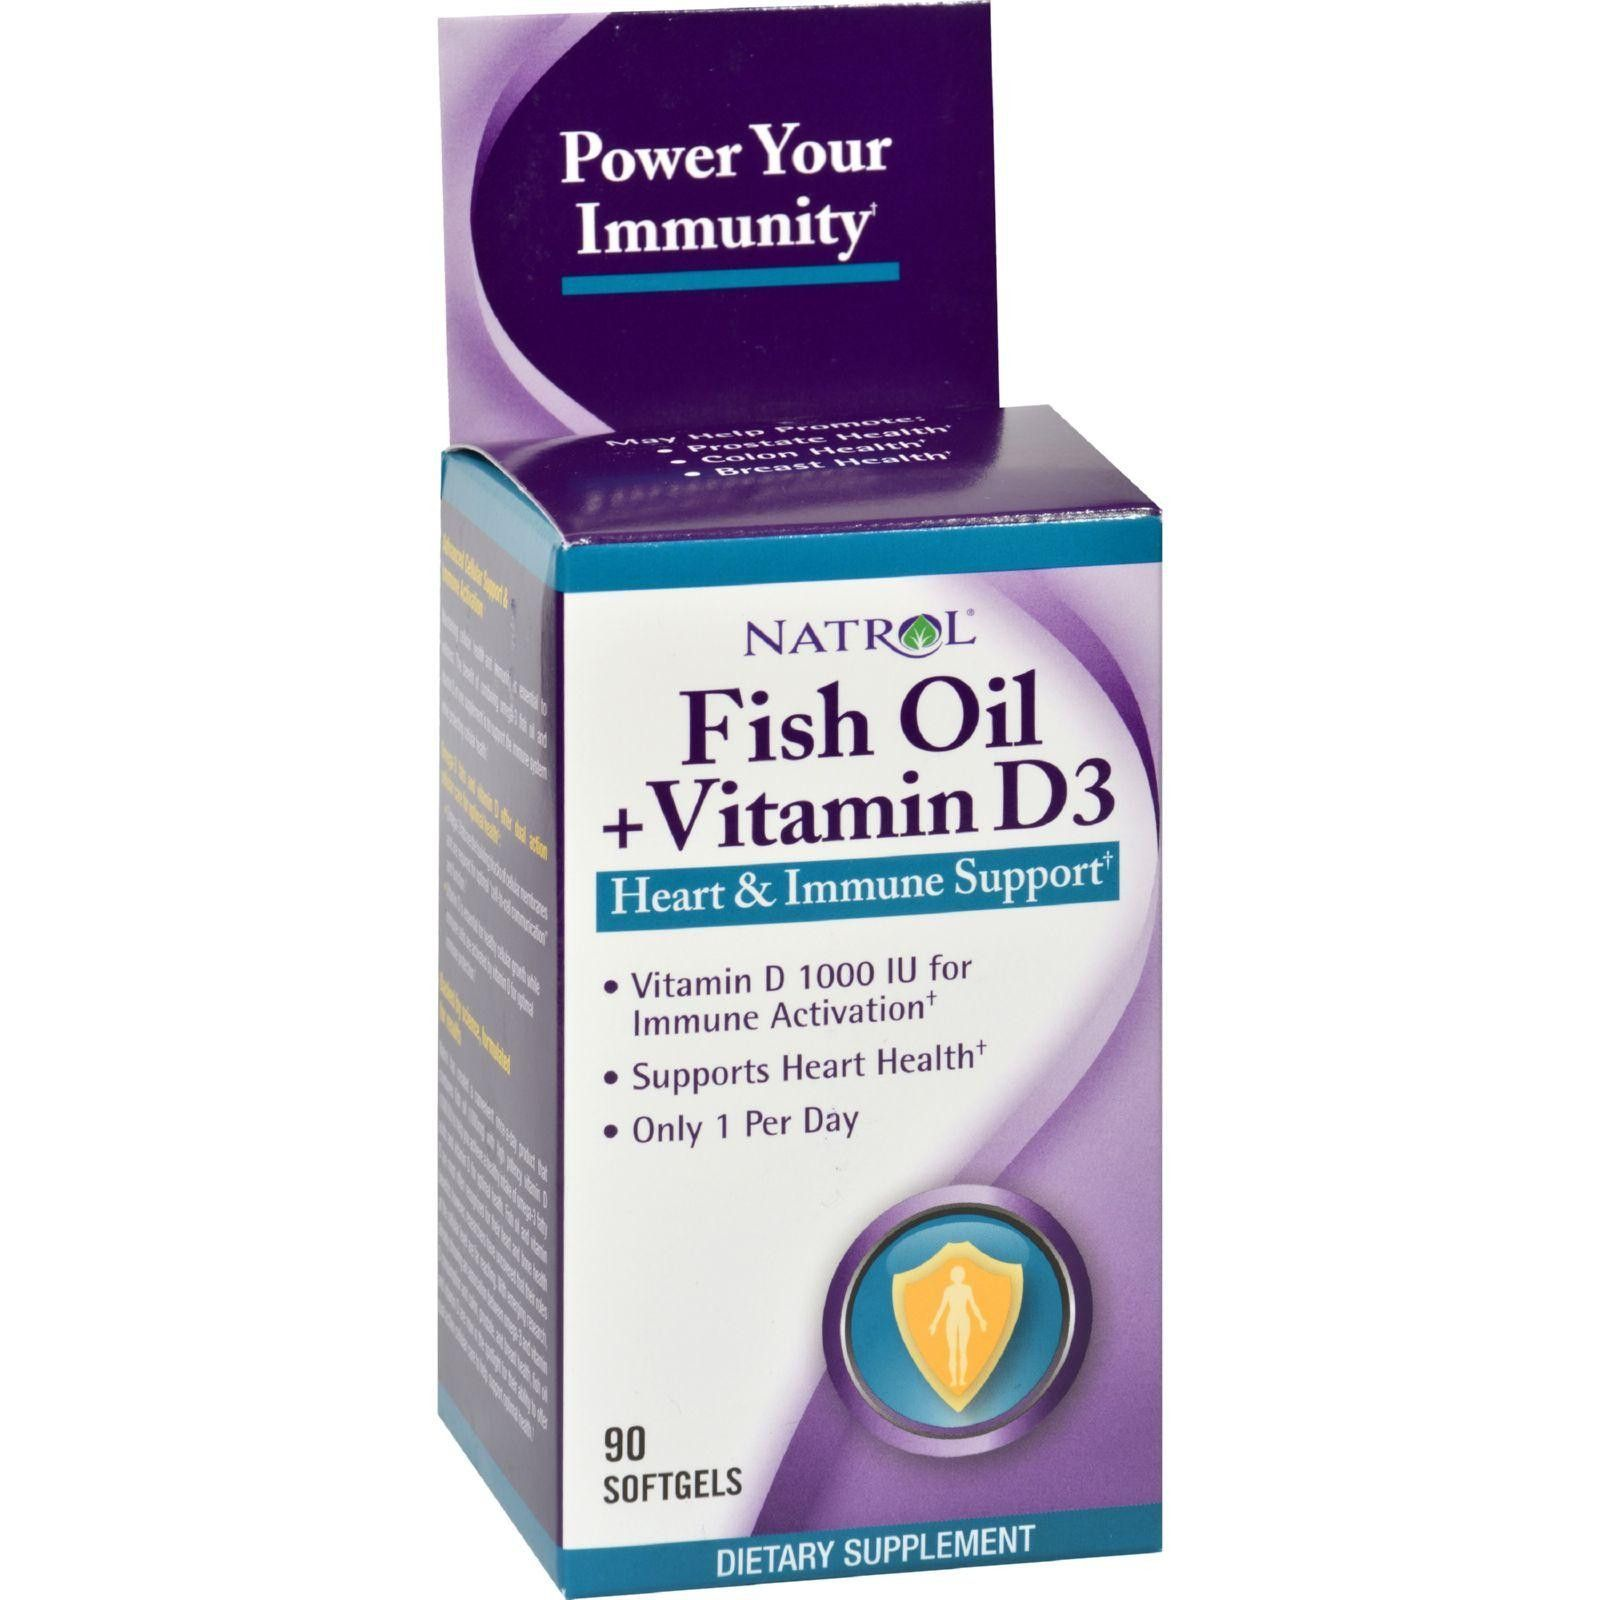 Natrol Fish Oil Plus Vitamin D3 Heart And Immune Support